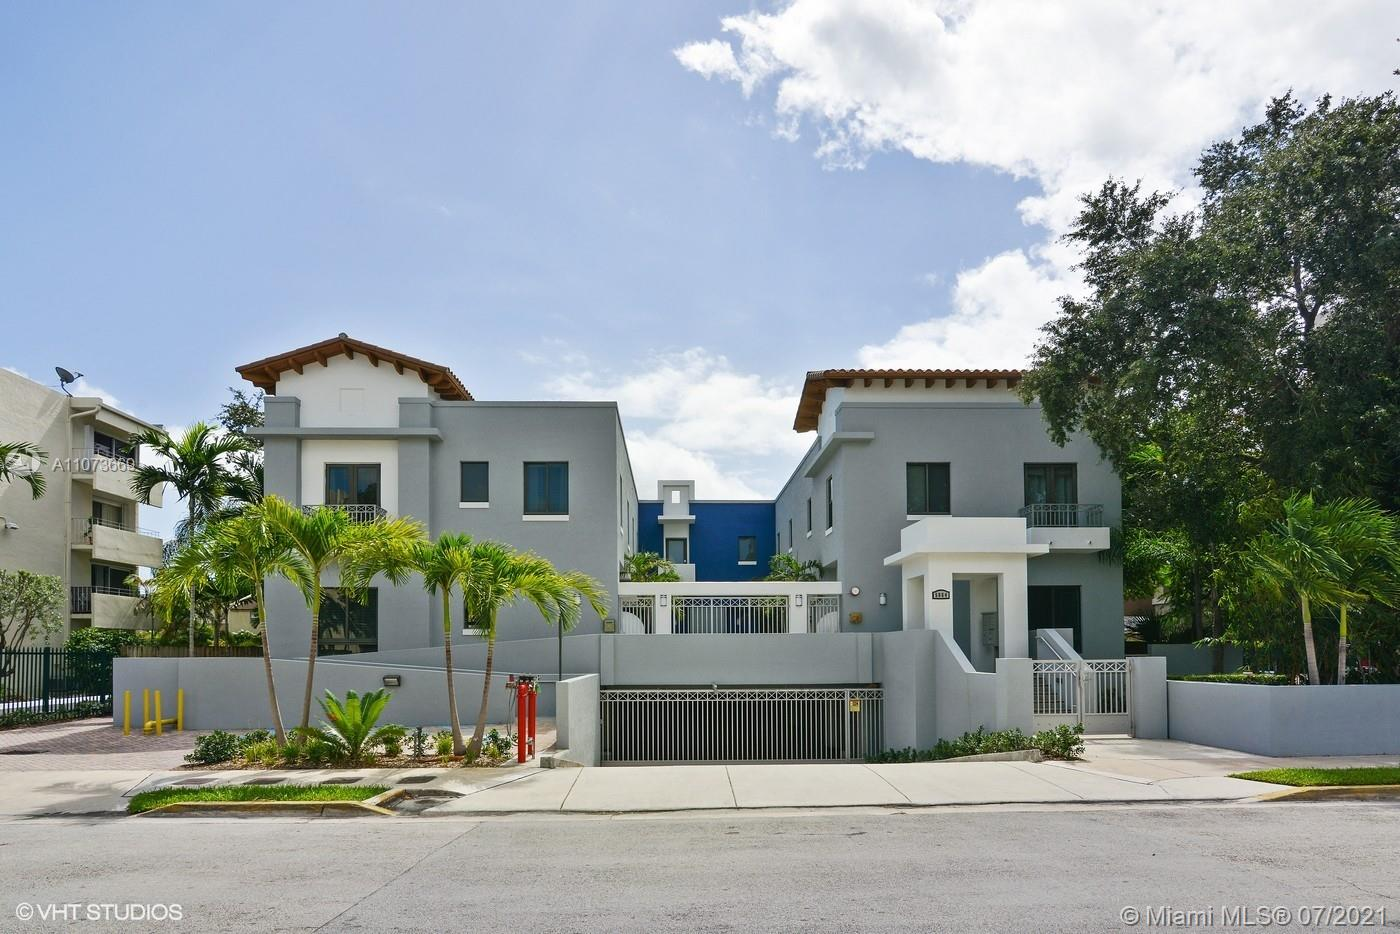 Stunning townhome in the heart of South Miami.  This townhome is unique because it has a two car garage with interior stairs into the unit.  The 2 bedroom/2.5 bath home is in move in conditions.  Steps to all the restaurants and shops in the area.  If you are looking for excellent schools look no more this is it.